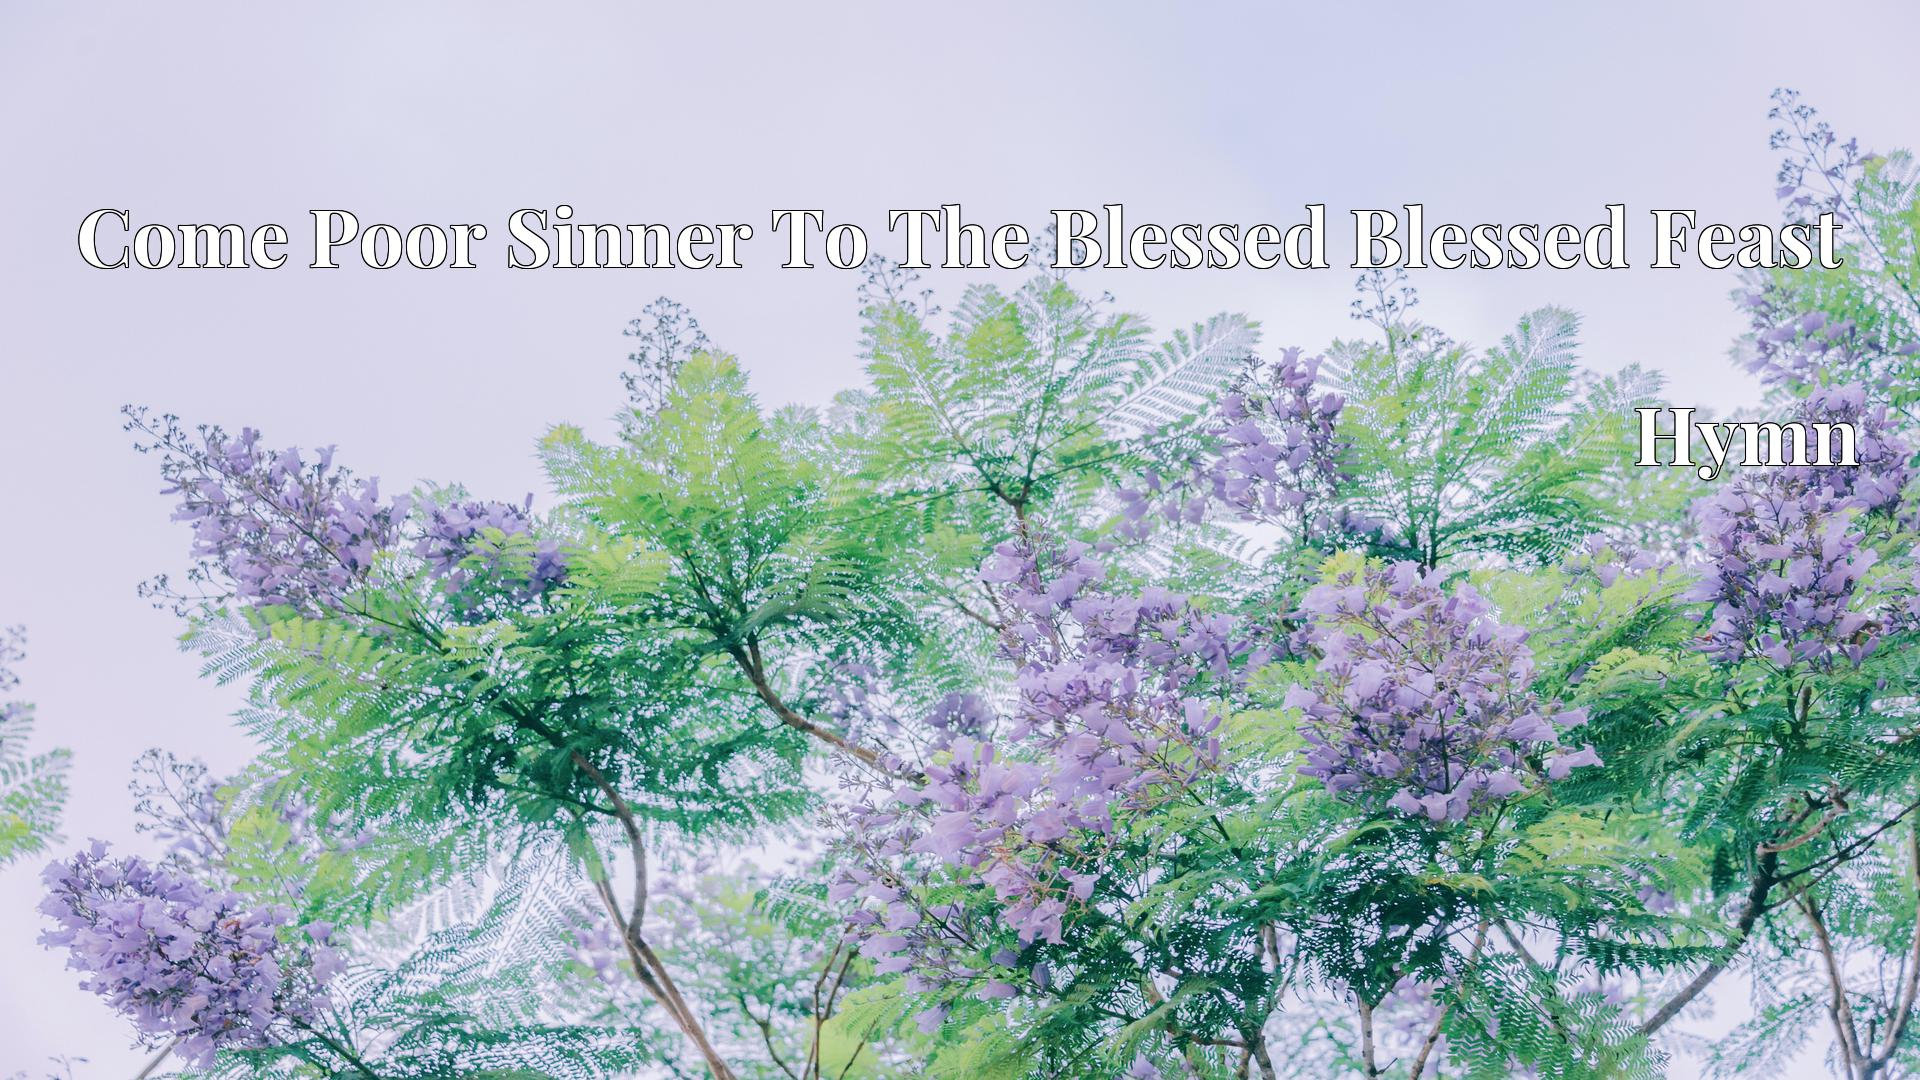 Come Poor Sinner To The Blessed Blessed Feast Hymn Lyric